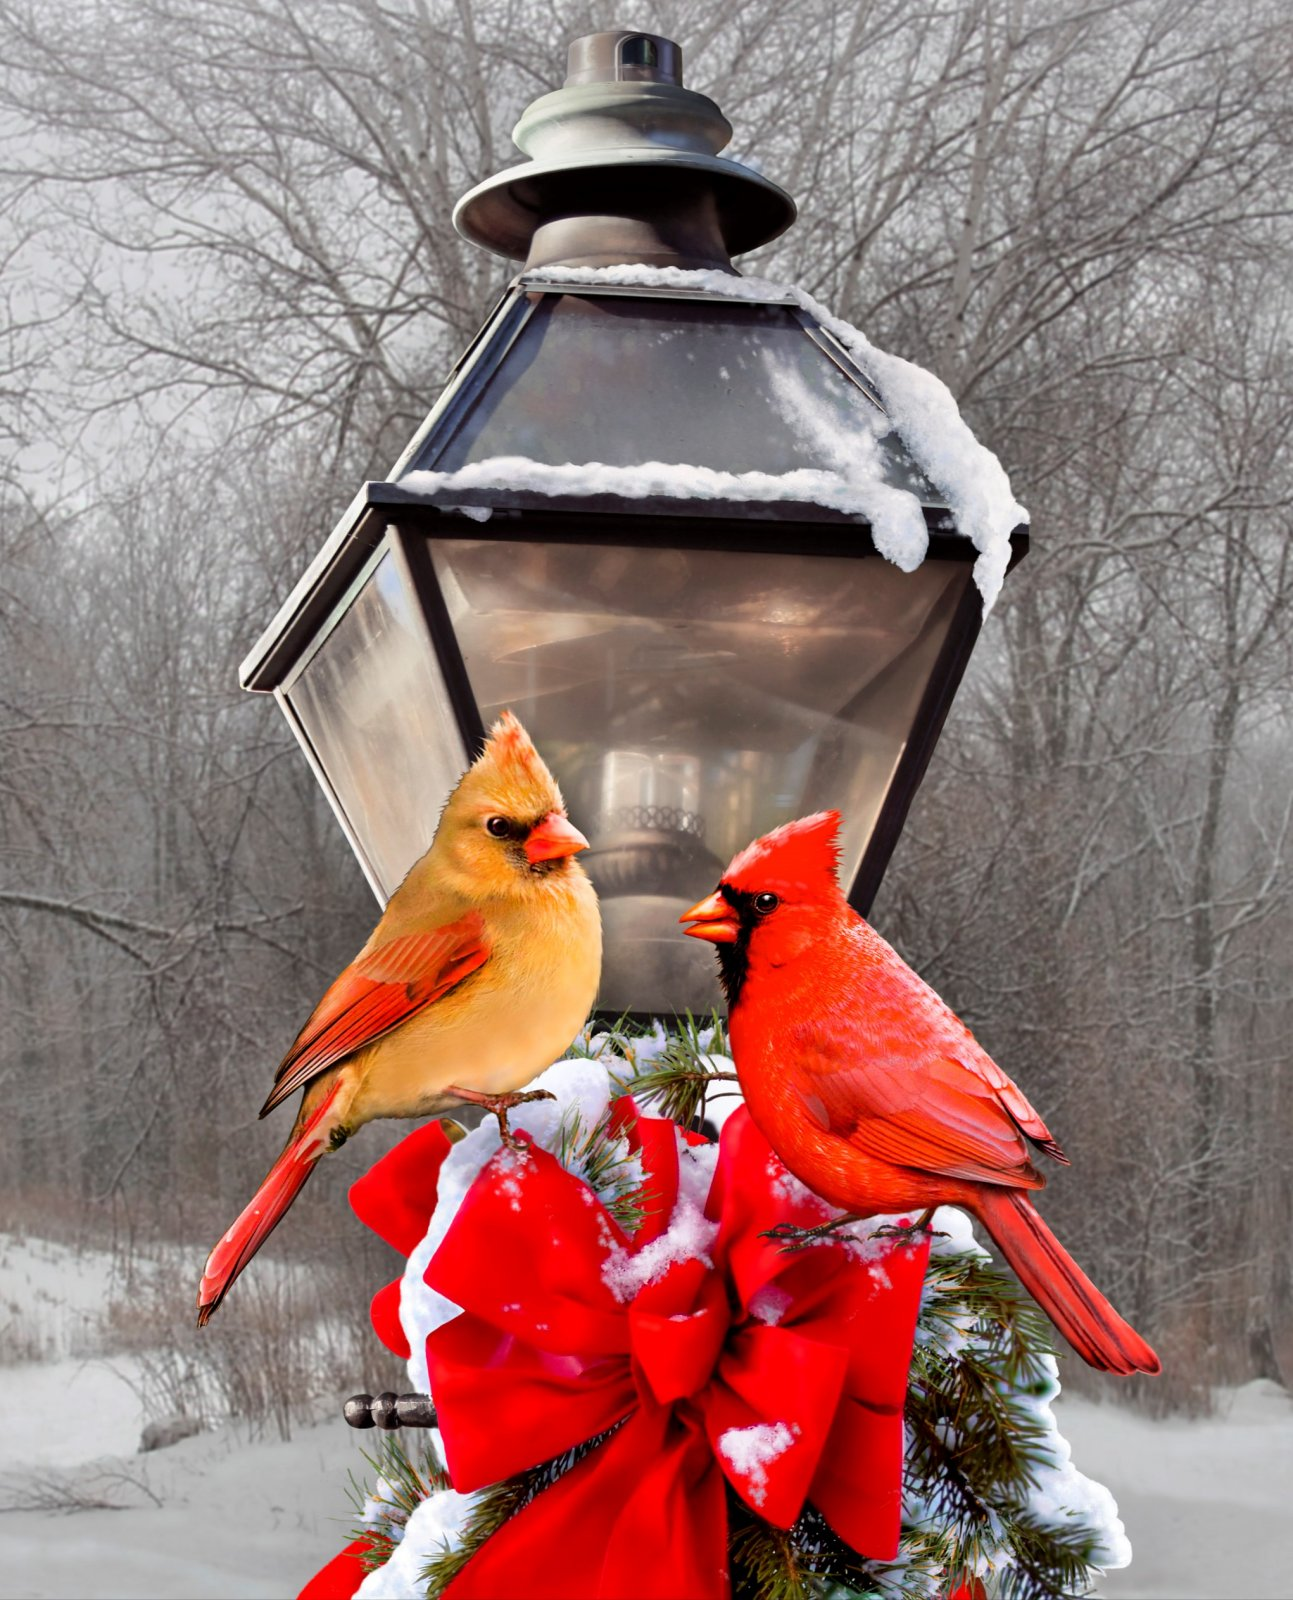 Cardinals and Street Lamps Quilt Panel by David Textiles